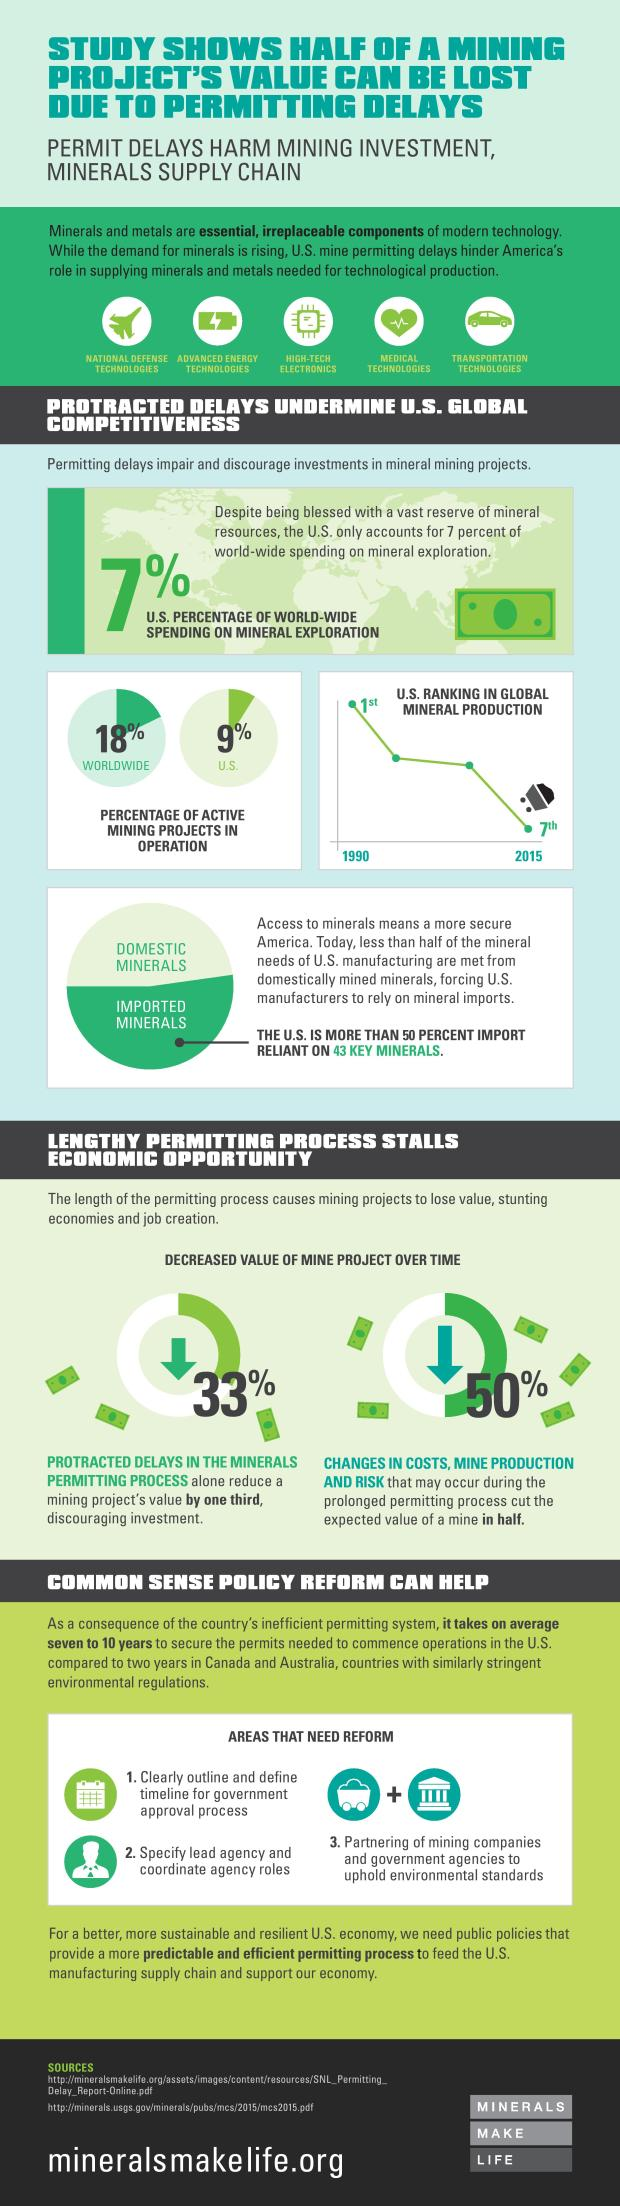 FINAL_SNL_Infographic_-_NMA-page-001